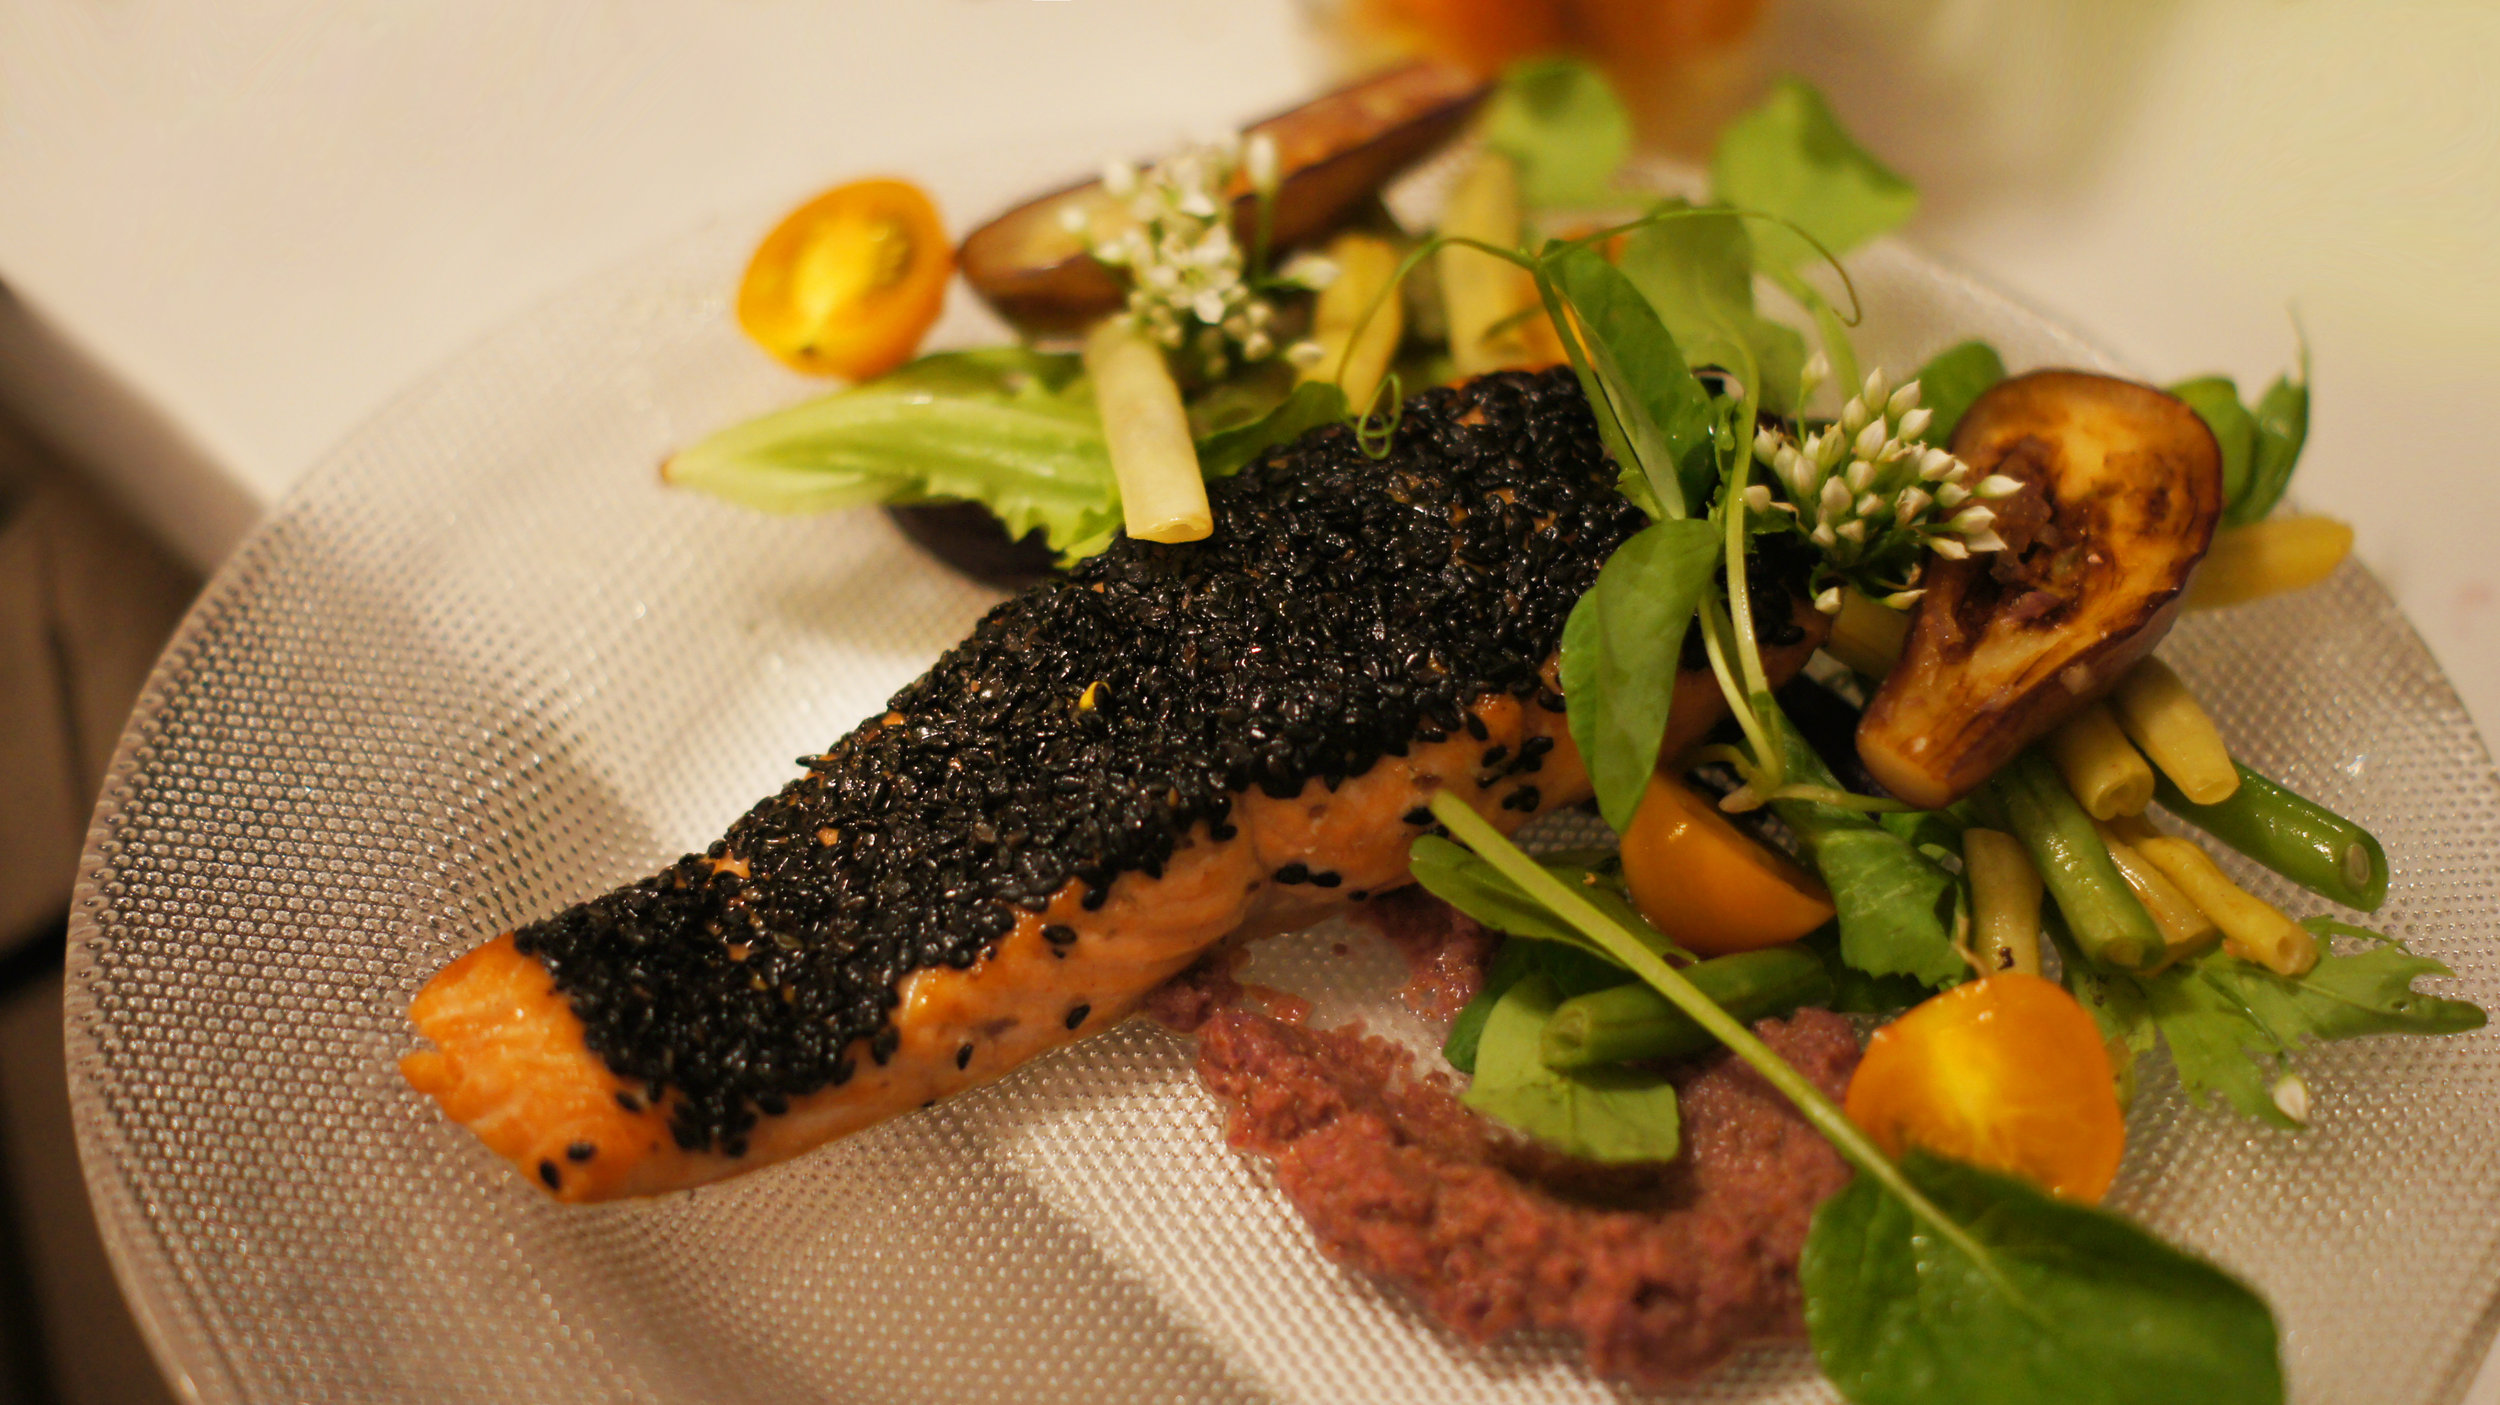 Wild salmon crusted in sesame seeds, carrot pure and grilled seasonal vegetables as the entree